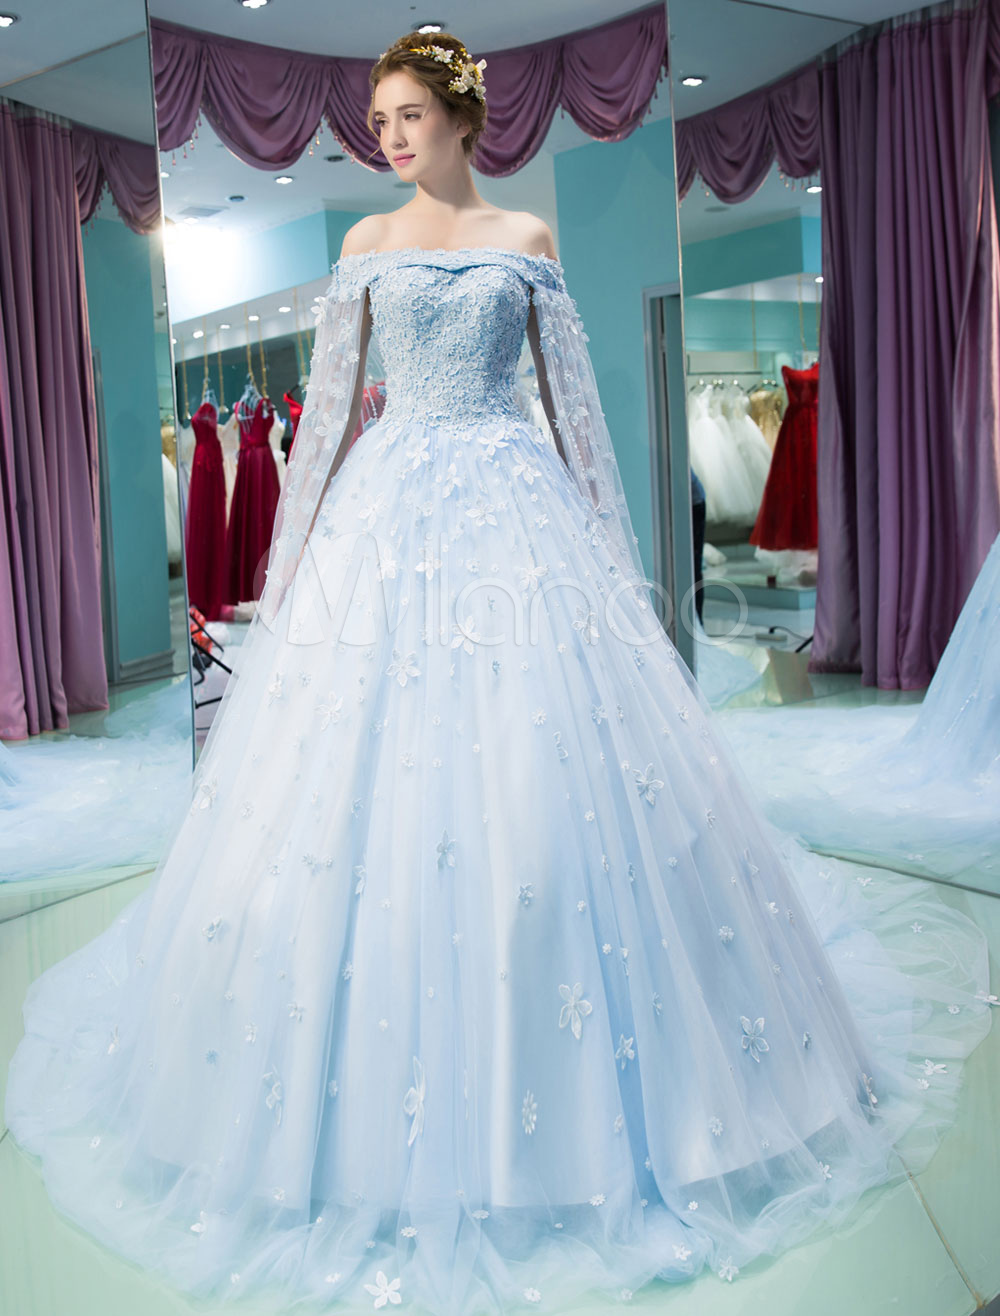 Luxury Quinceanera Dresses Lace Flowers Beading Off The Shoulder Watteau Train Princess Pageant Dresses